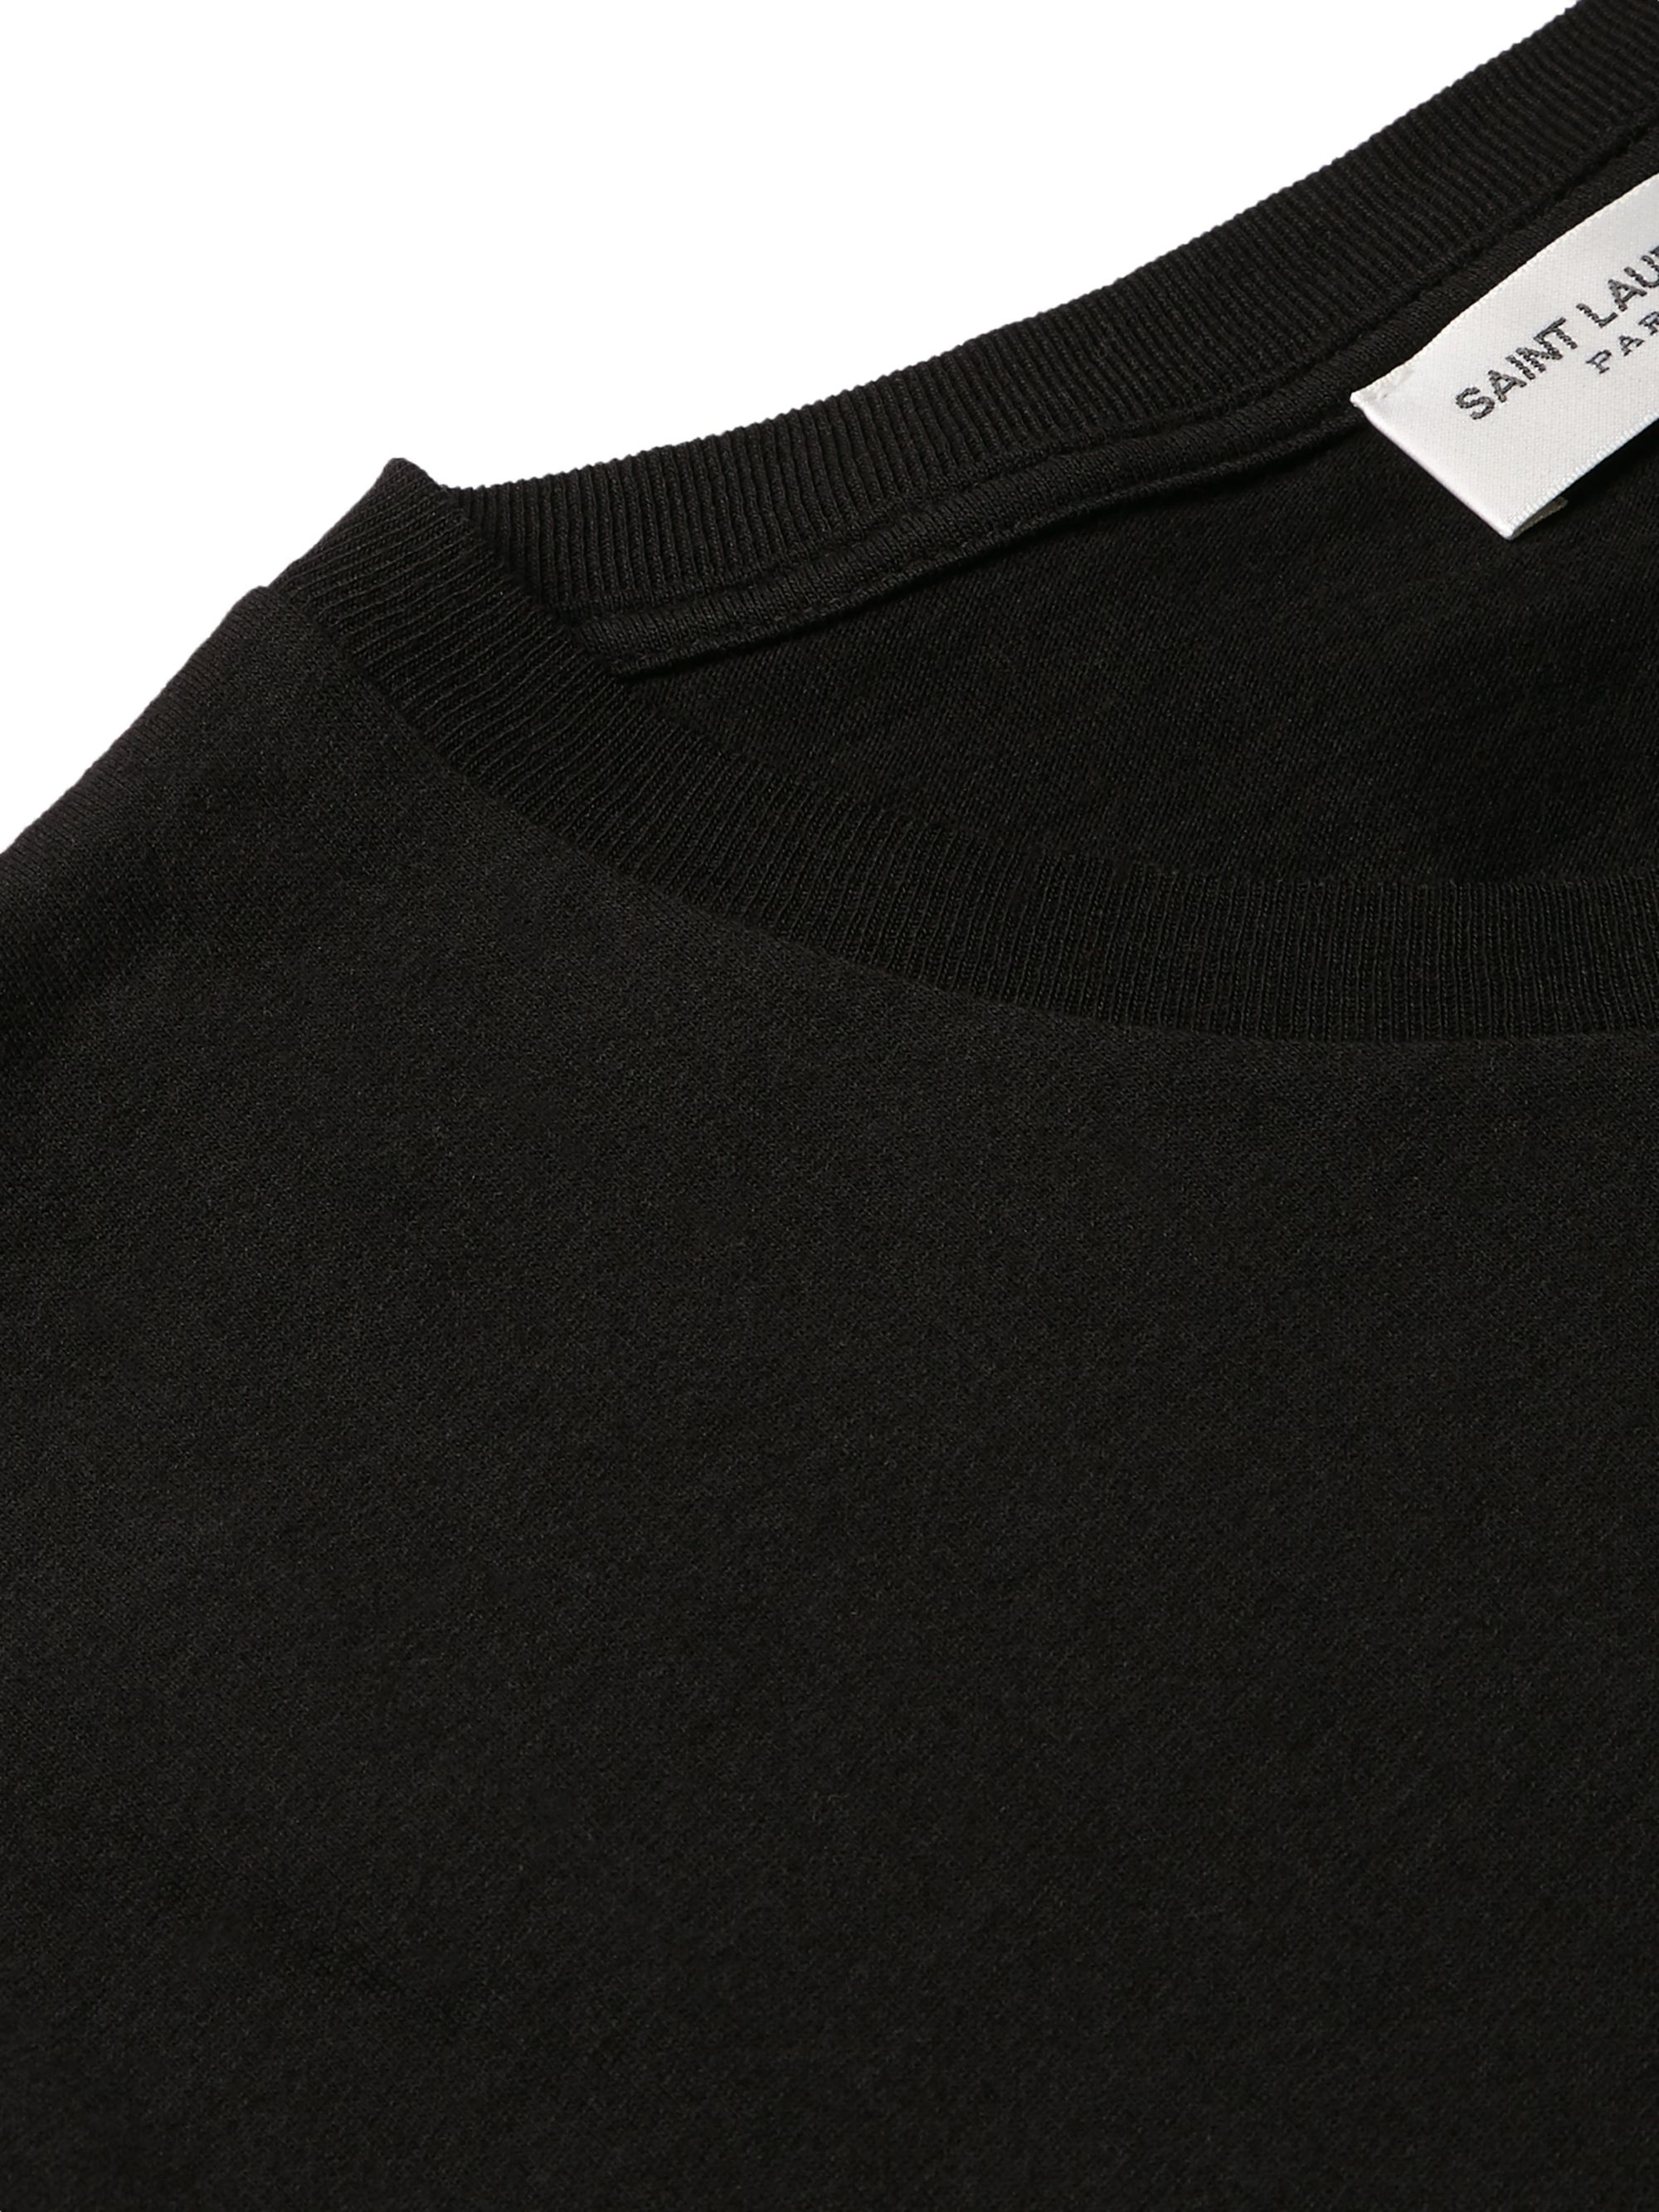 SAINT LAURENT Logo-Print Cotton-Jersey T-Shirt